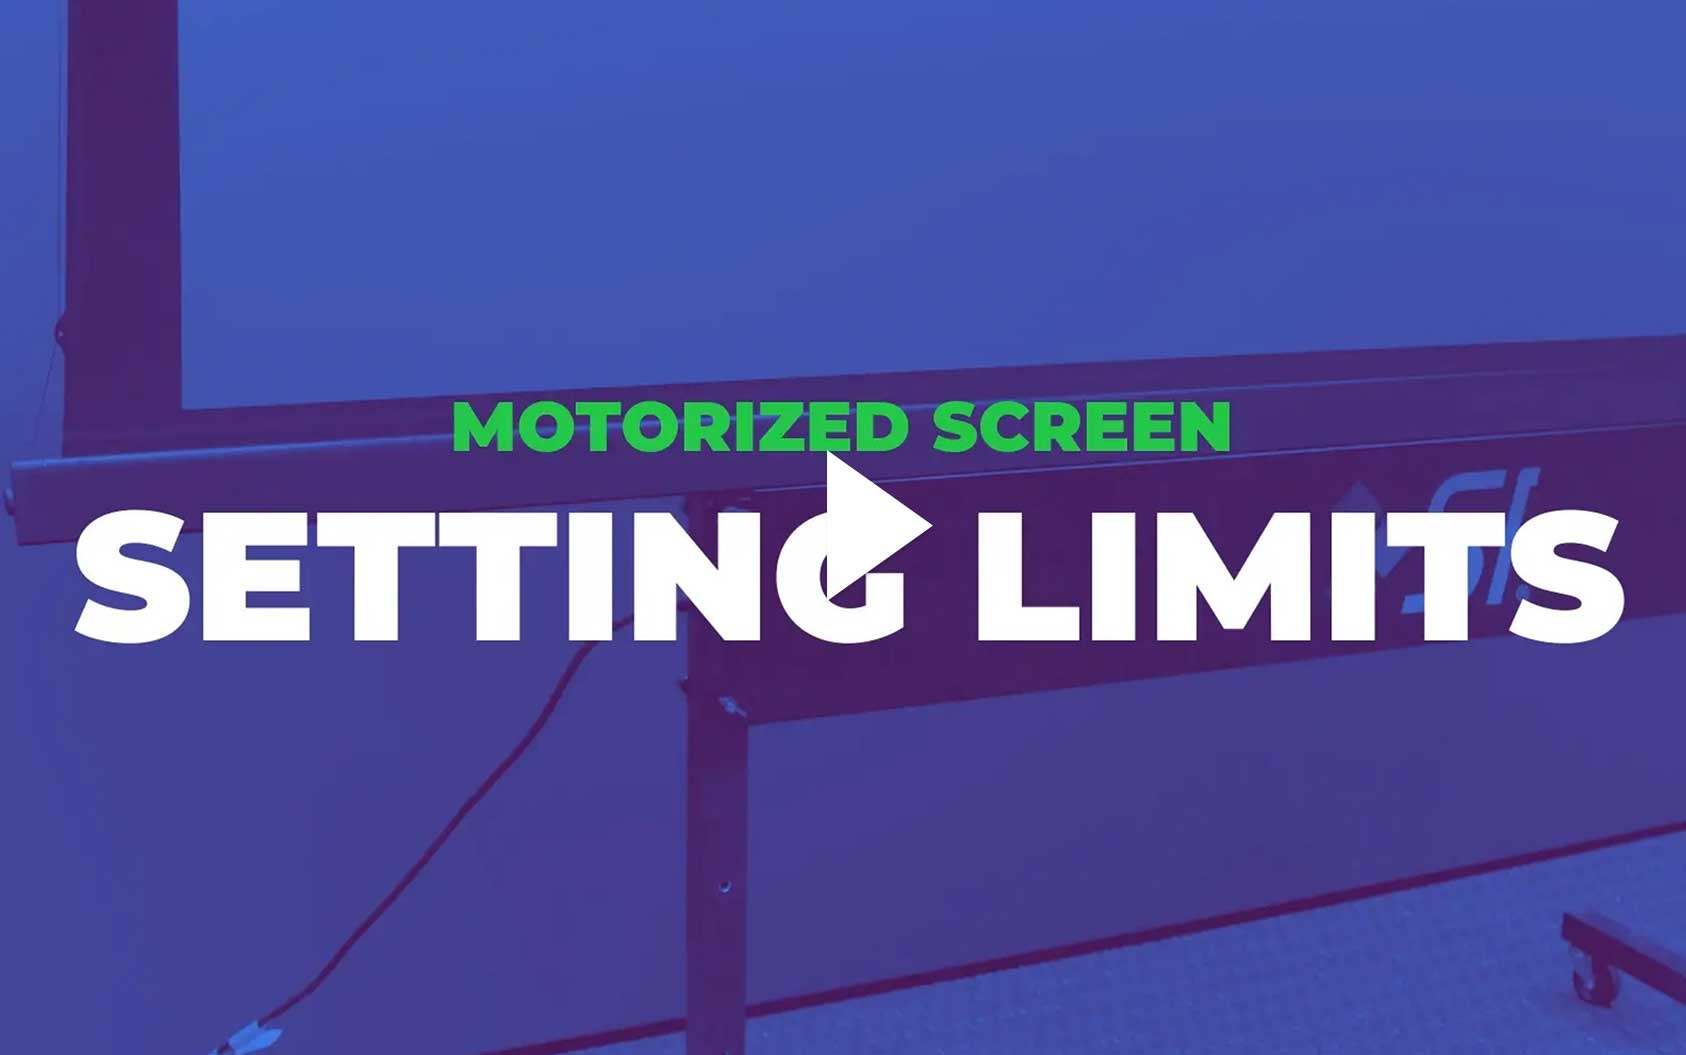 3 & 5 Series Motorized - How to Set Limits